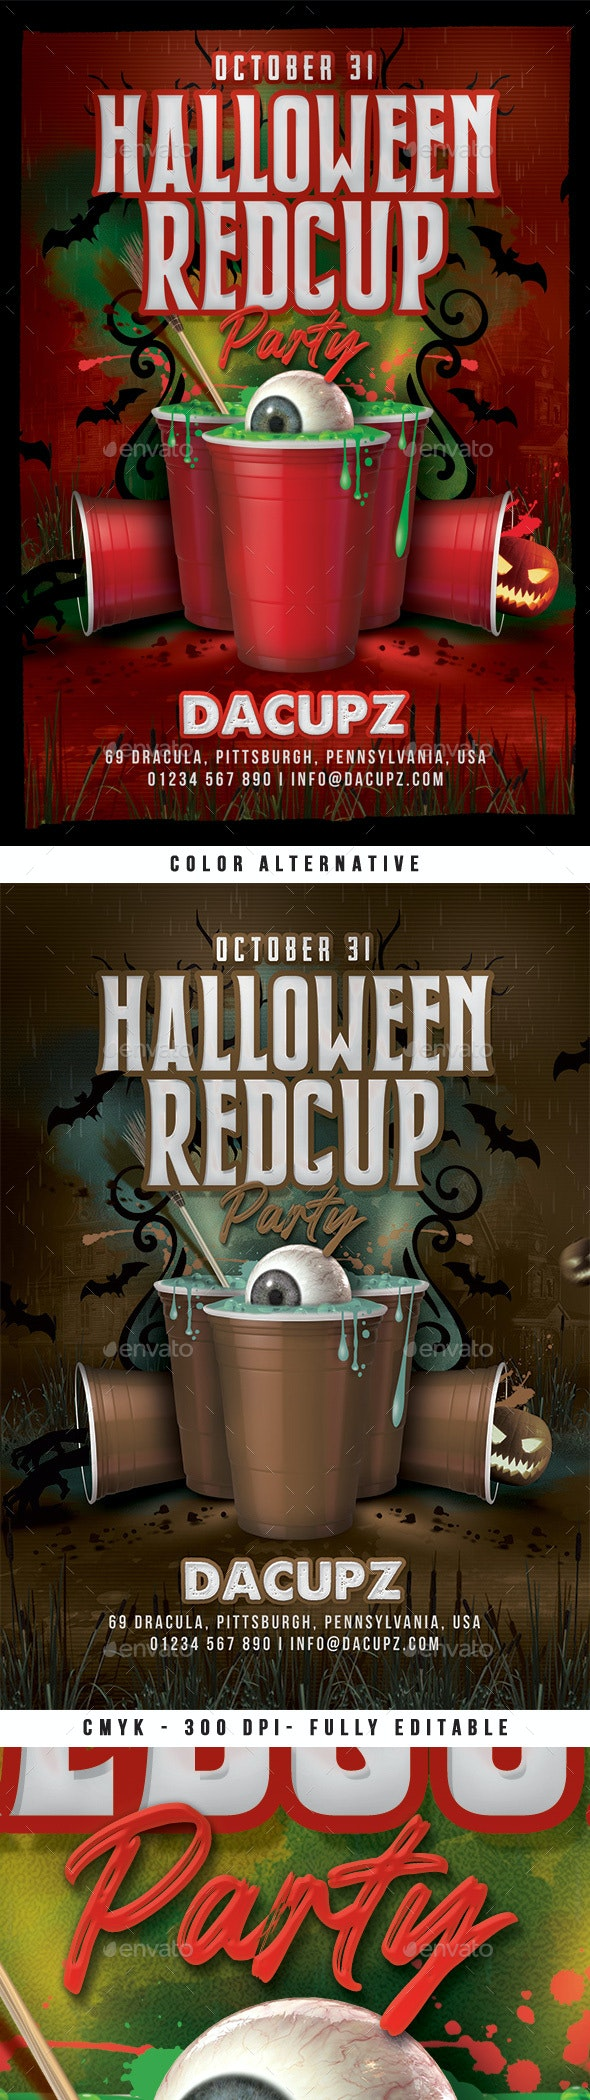 Halloween Red Cup Party Flyer - Clubs & Parties Events